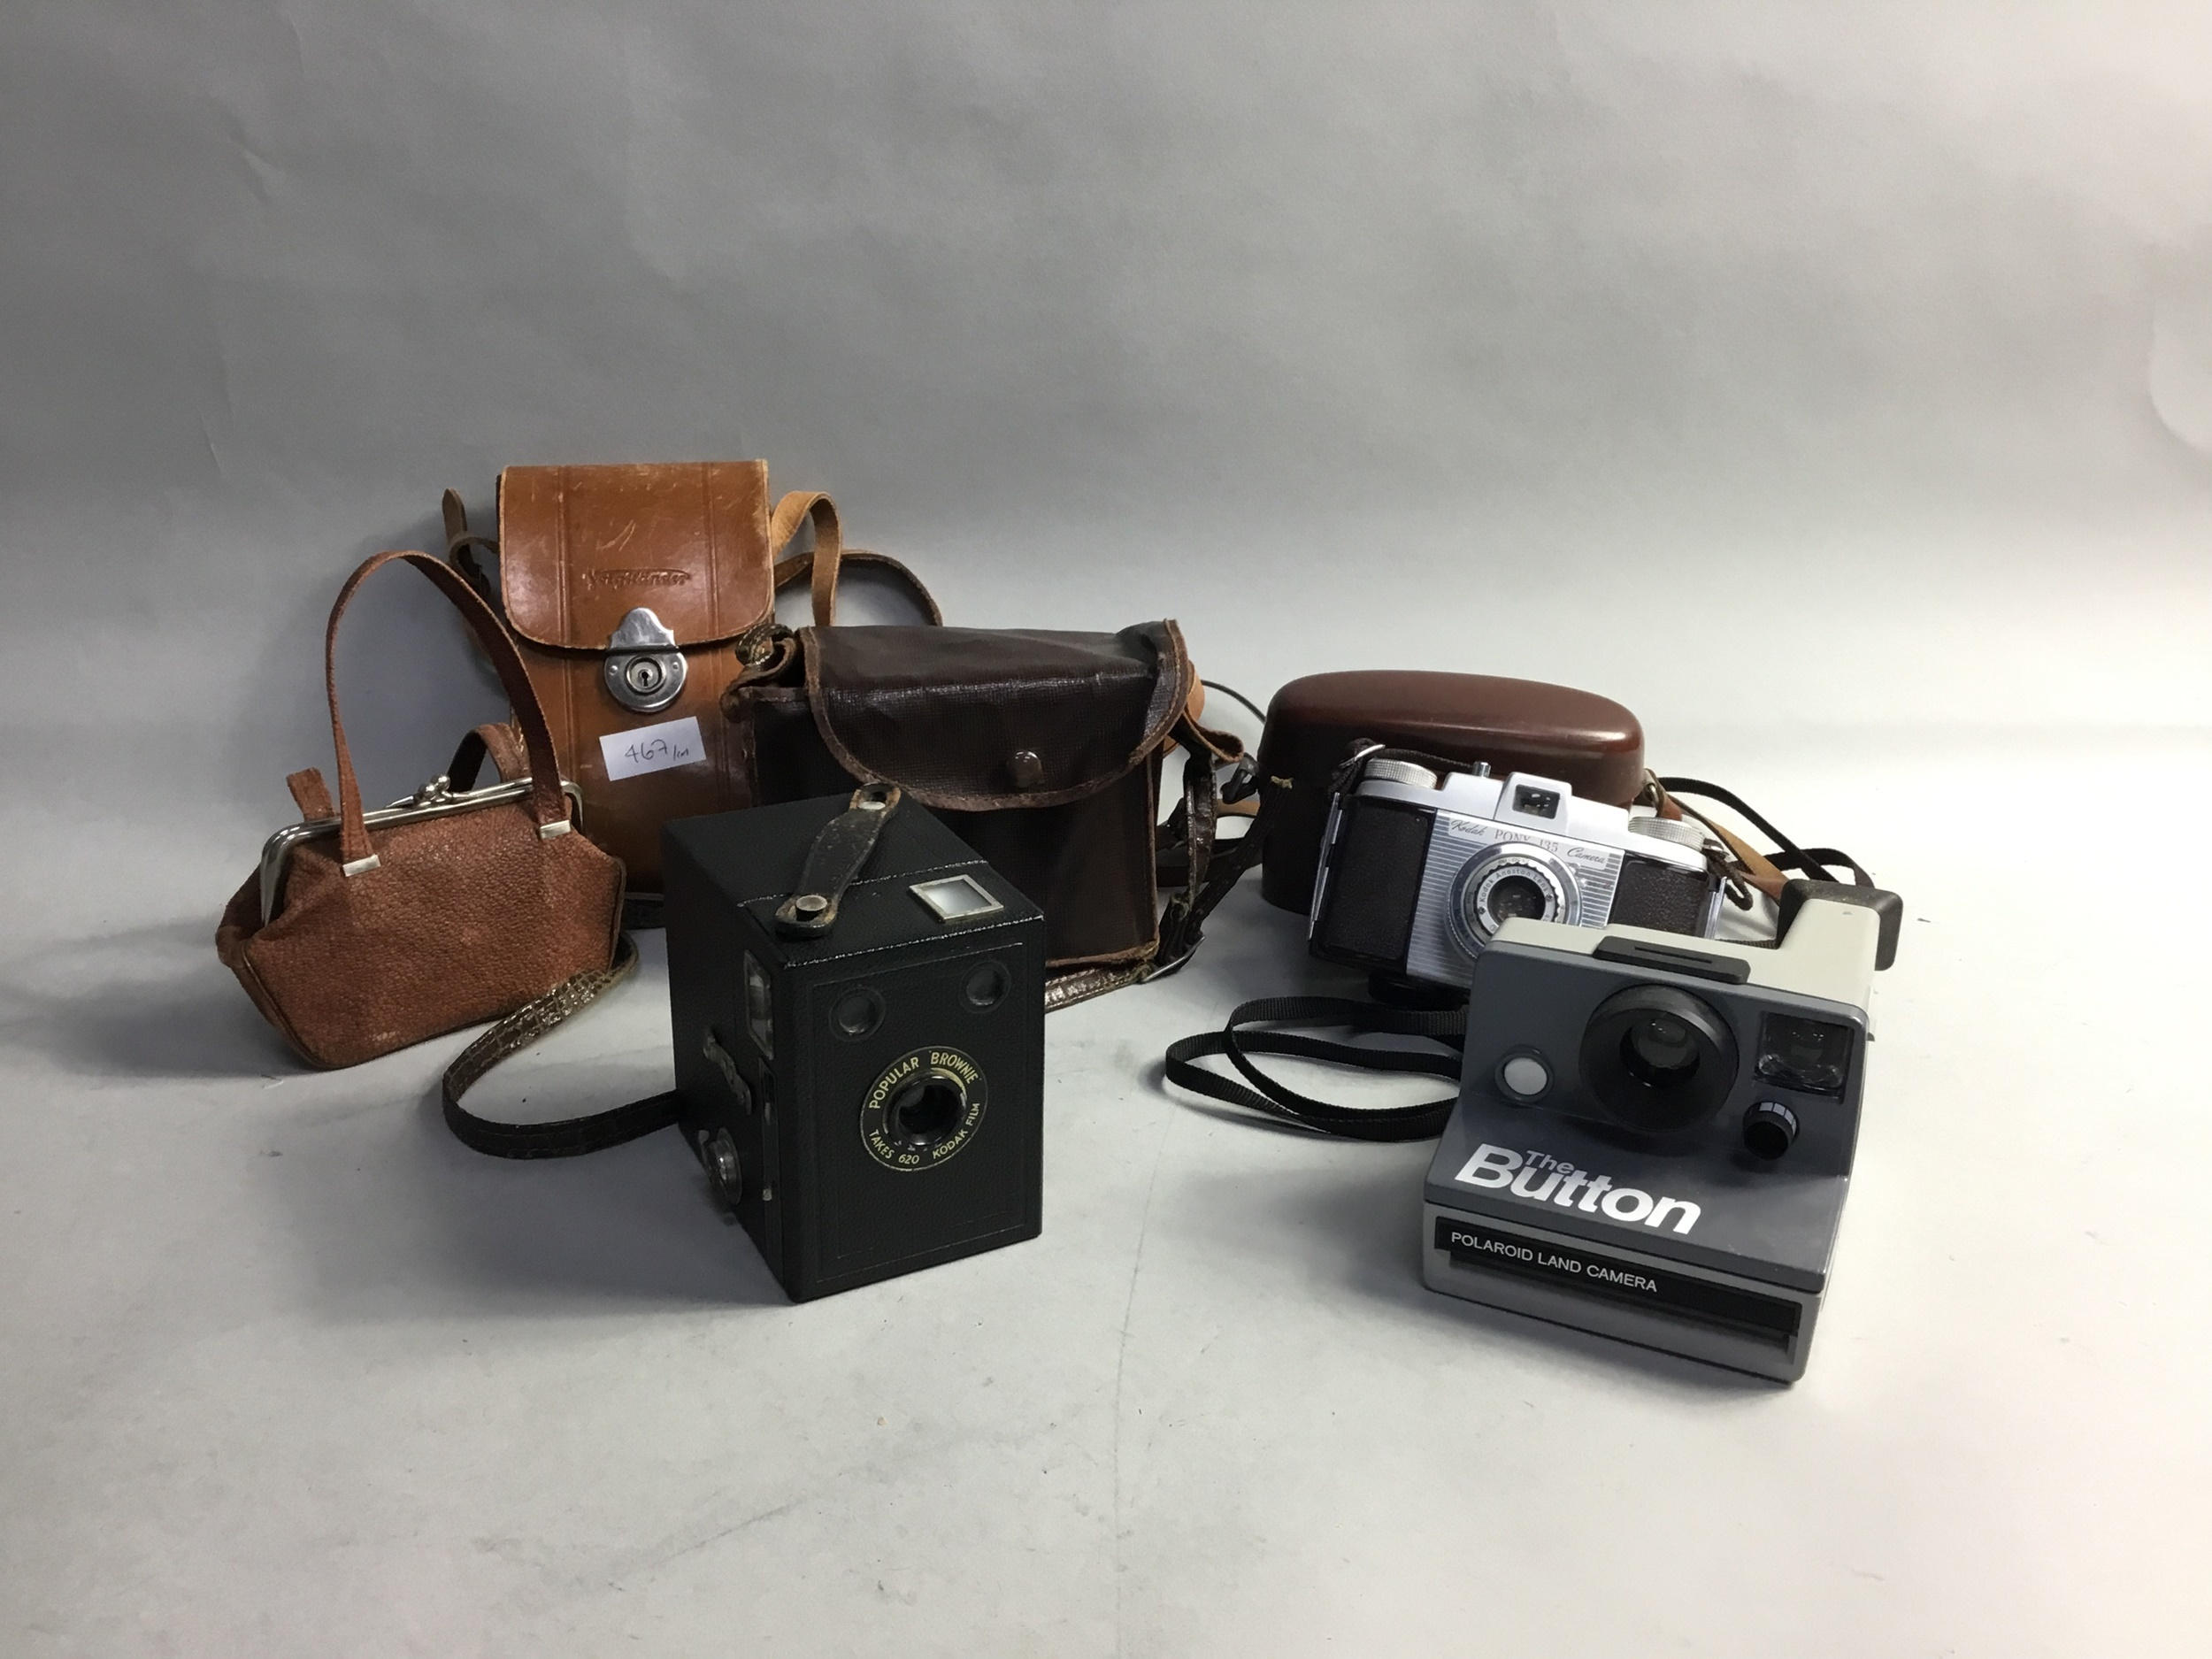 A KODAK BROWNIE CAMERA AND OTHER CAMERAS